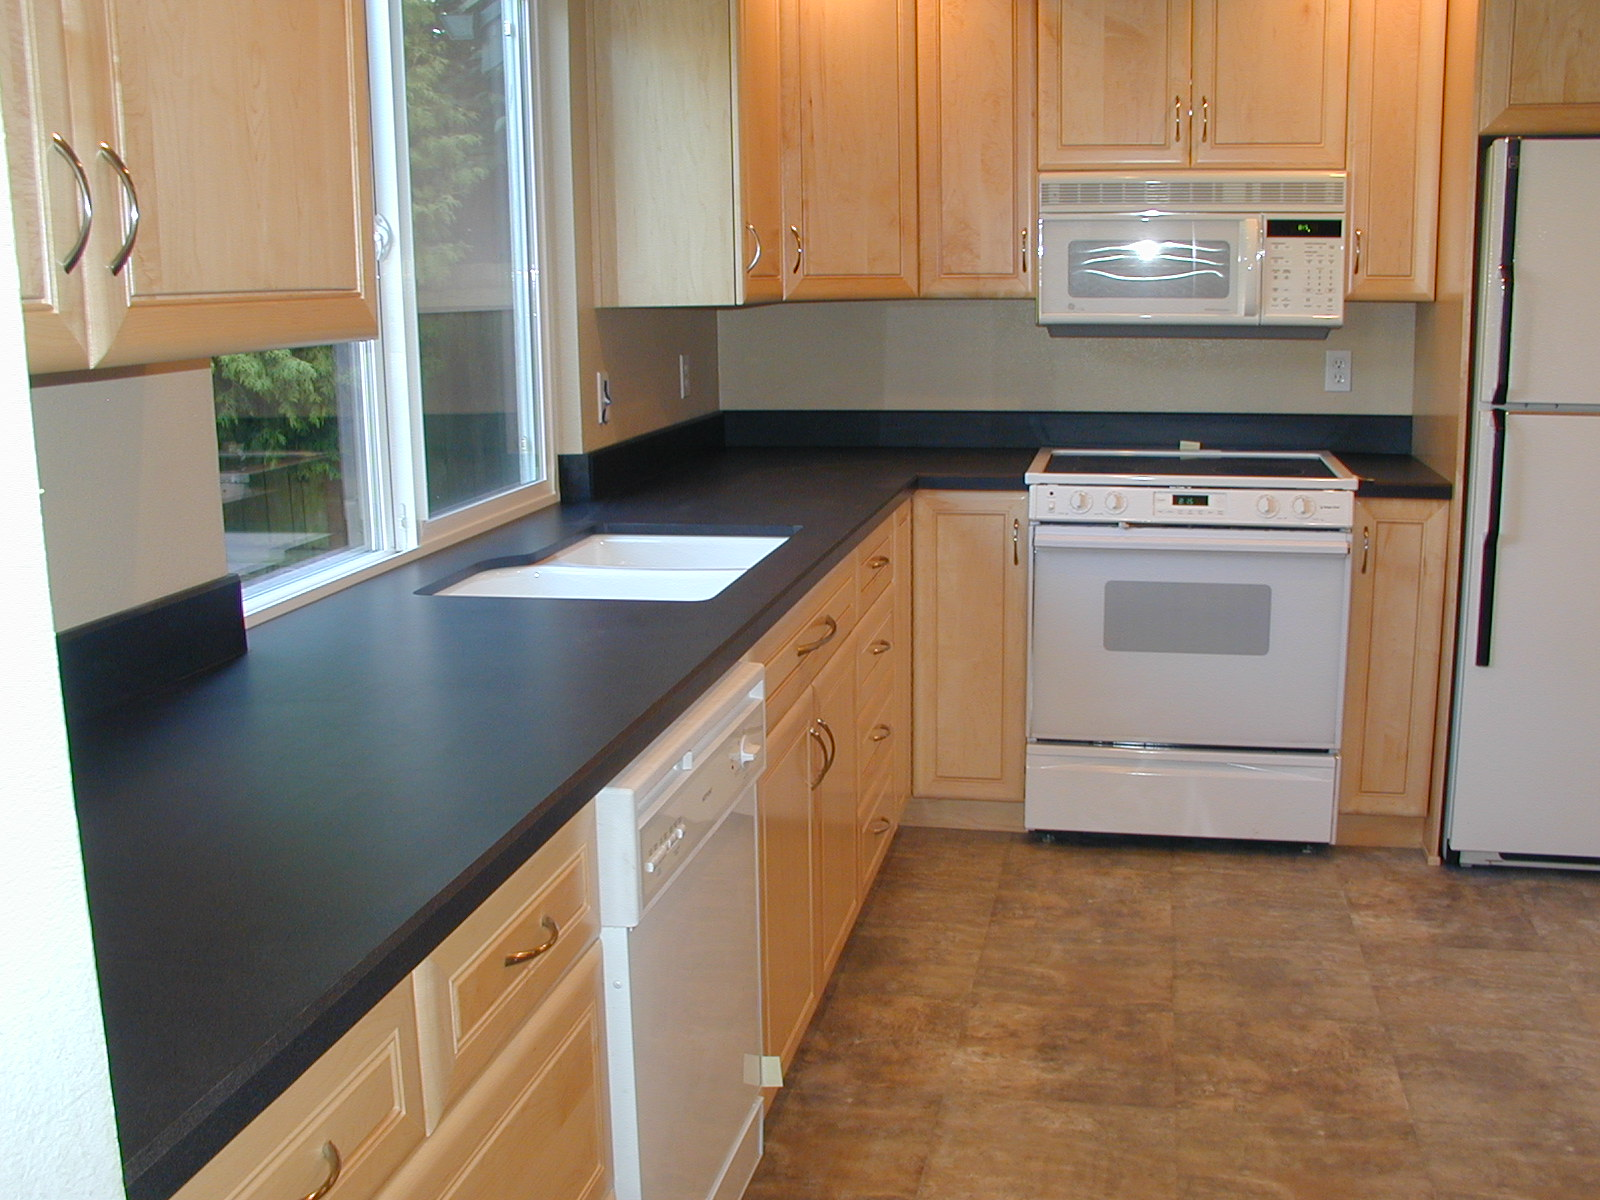 Laminate Countertop Sink Options : Then just pick up some cinder blocks for legs.